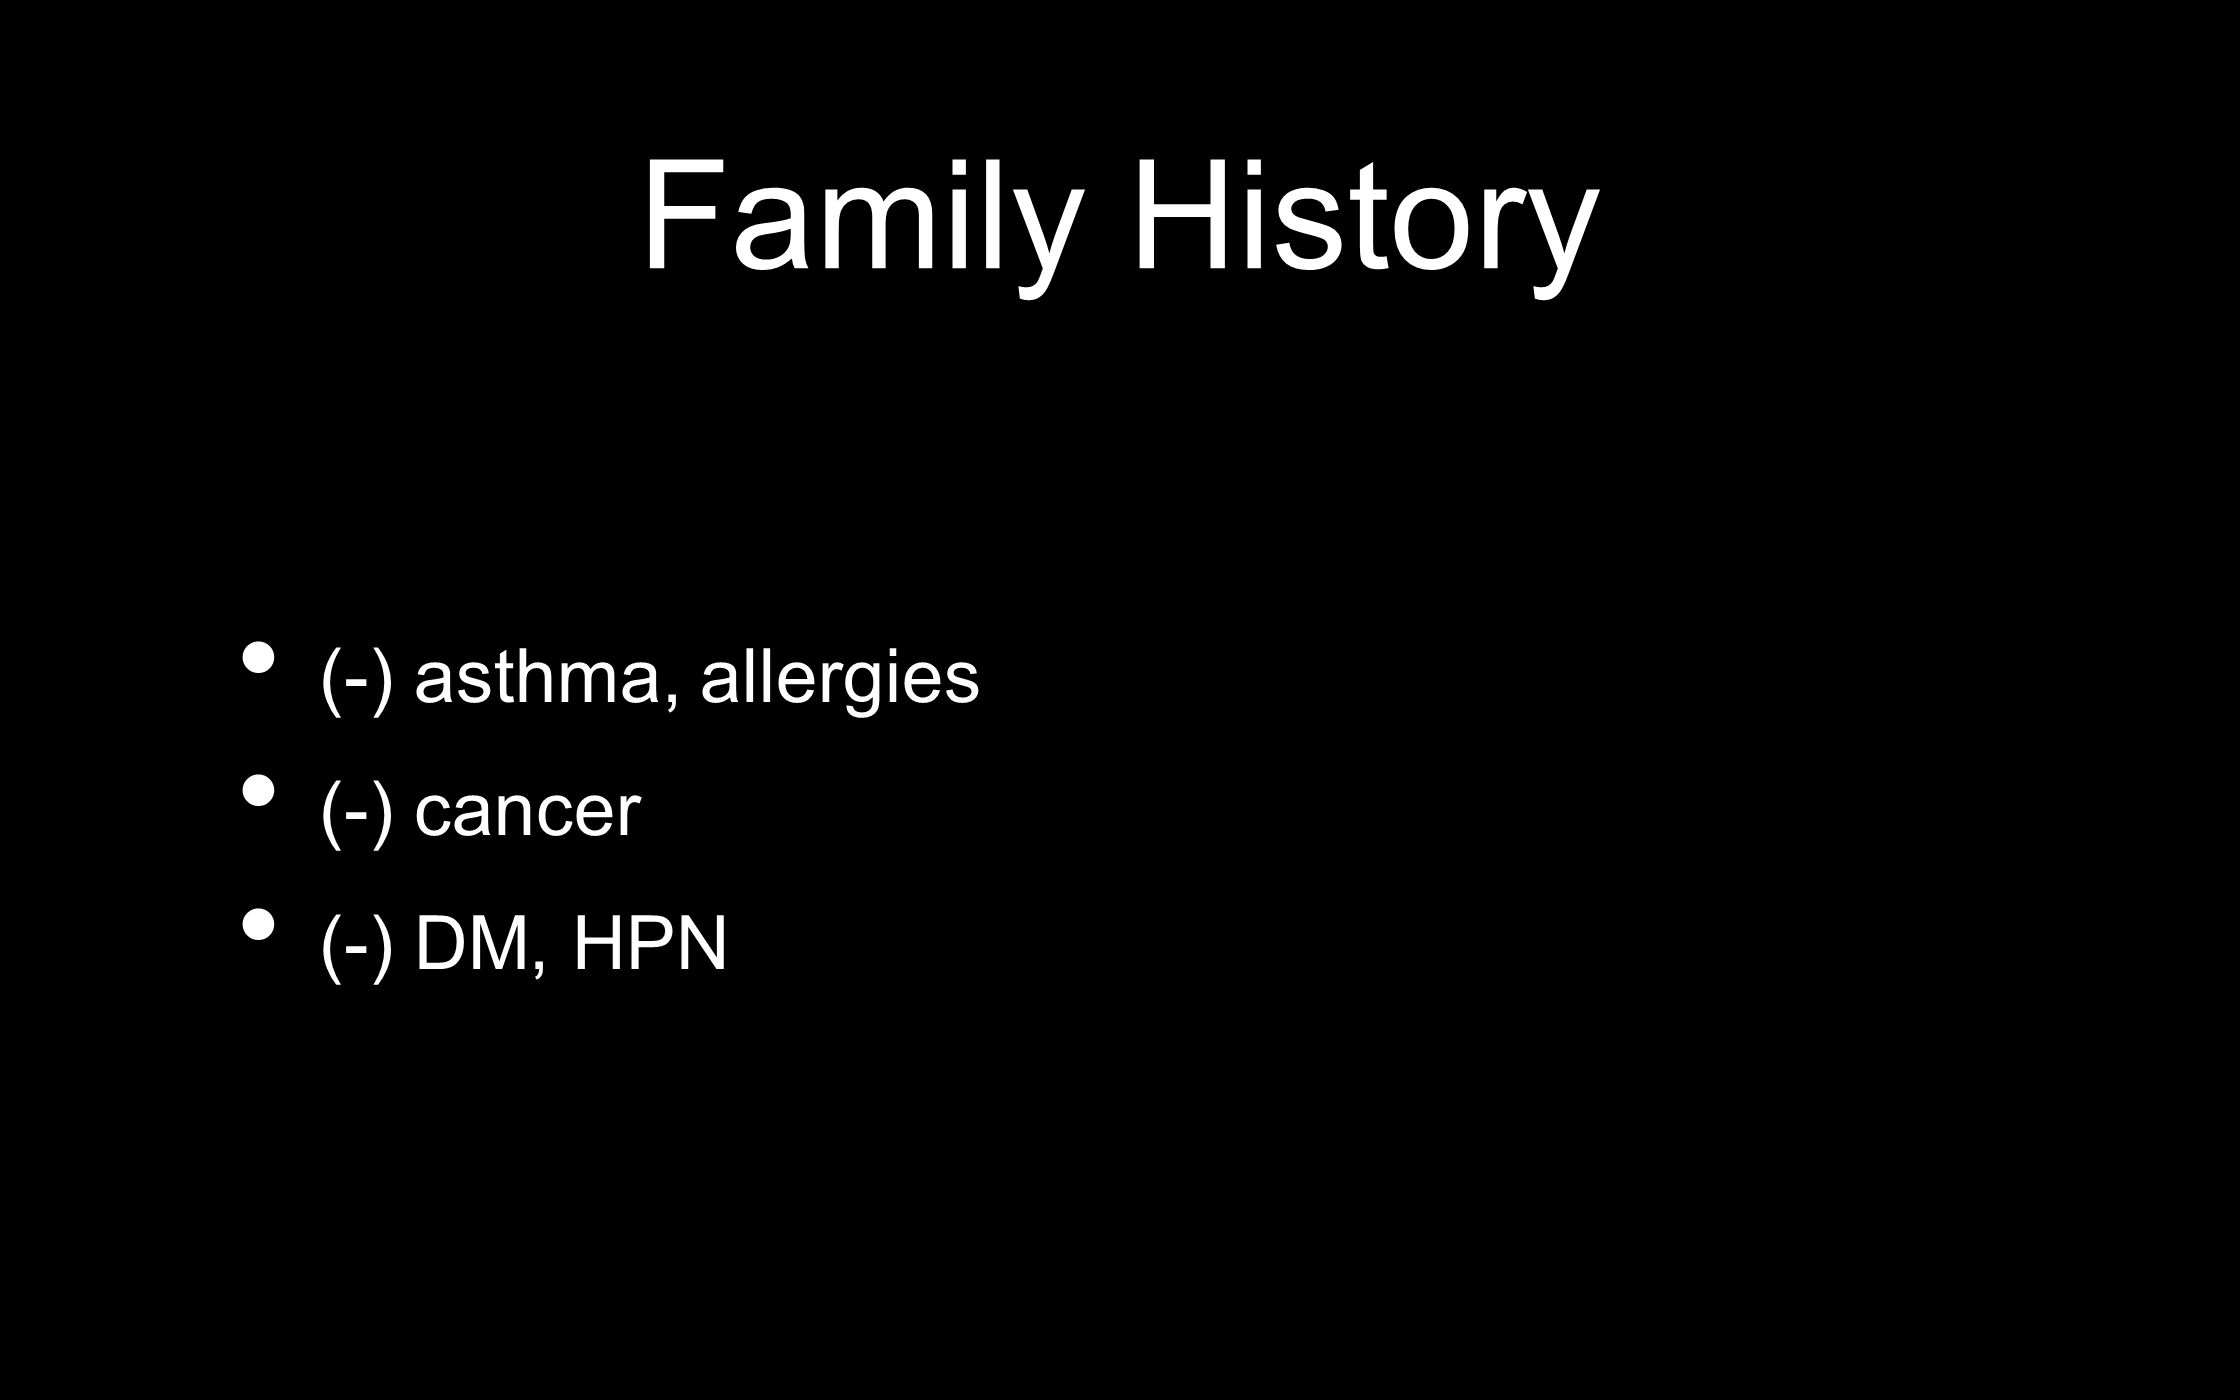 Family History (-) asthma, allergies (-) cancer (-) DM, HPN